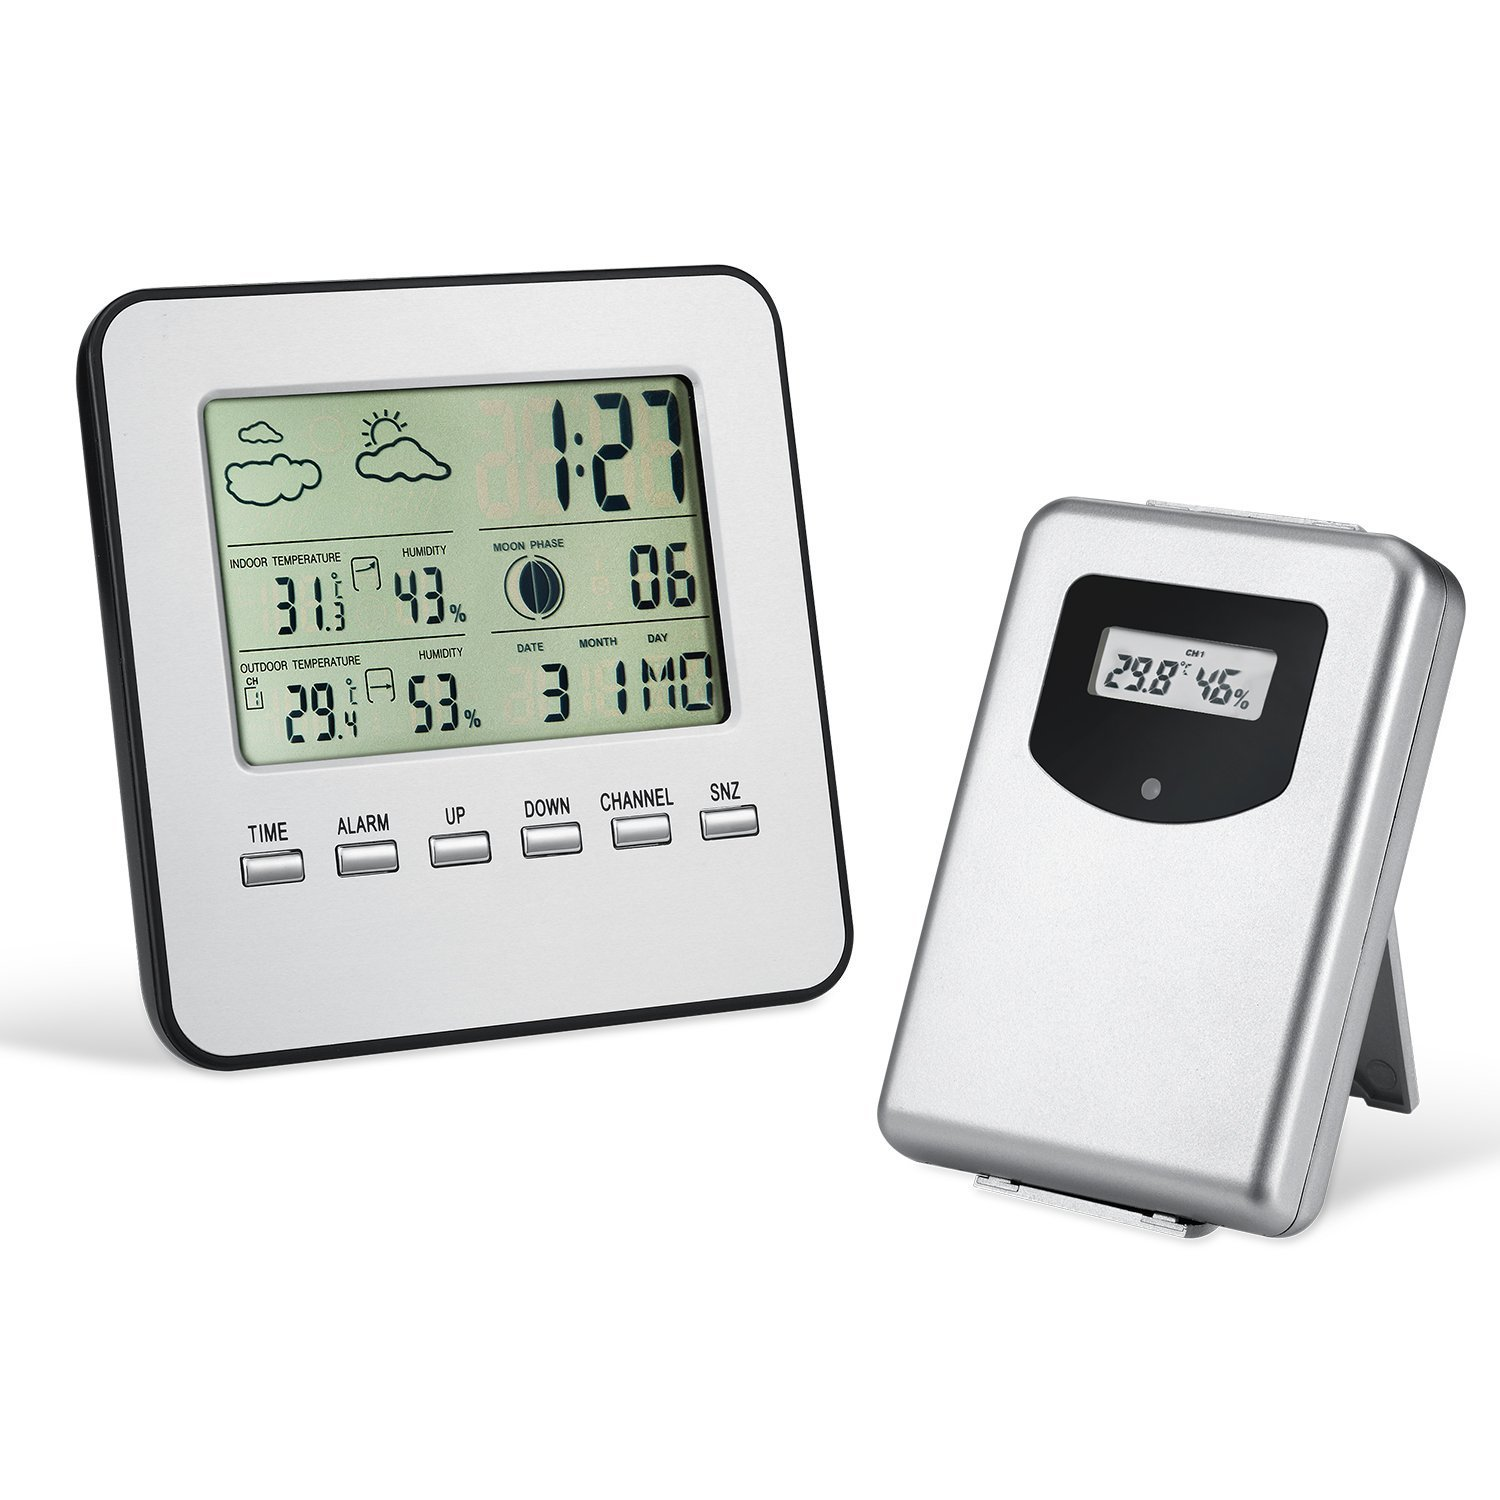 Wireless Indoor Outdoor Thermometer Hygrometer Weather Station Alarm Clock Electronic Digital Temperature Humidity Meter htc 1 indoor room lcd digital electronic thermometer hygrometer measuring temperature humidity meter alarm clock weather station